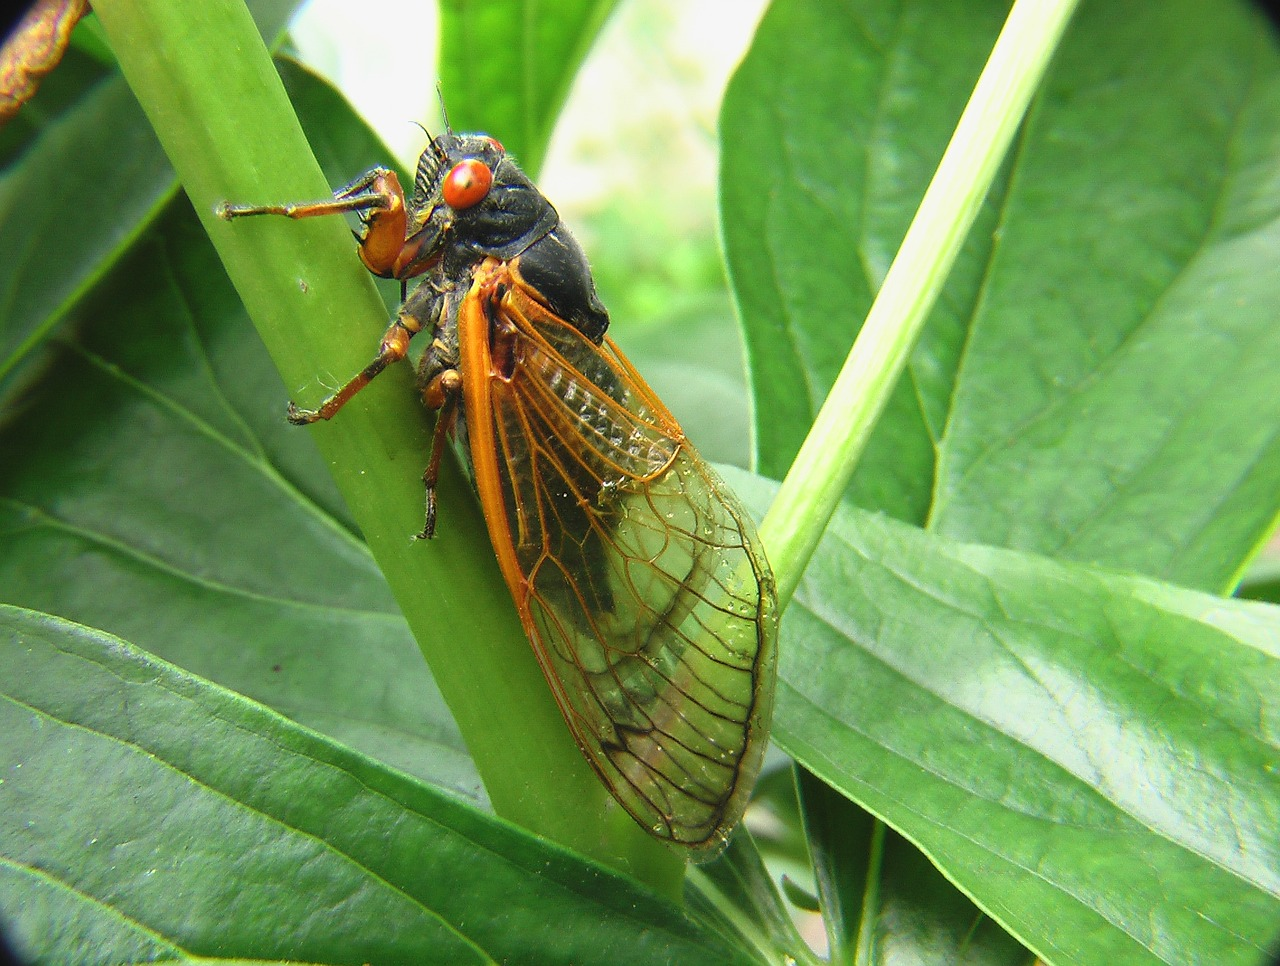 A cicada perched on a green stem of a plant.